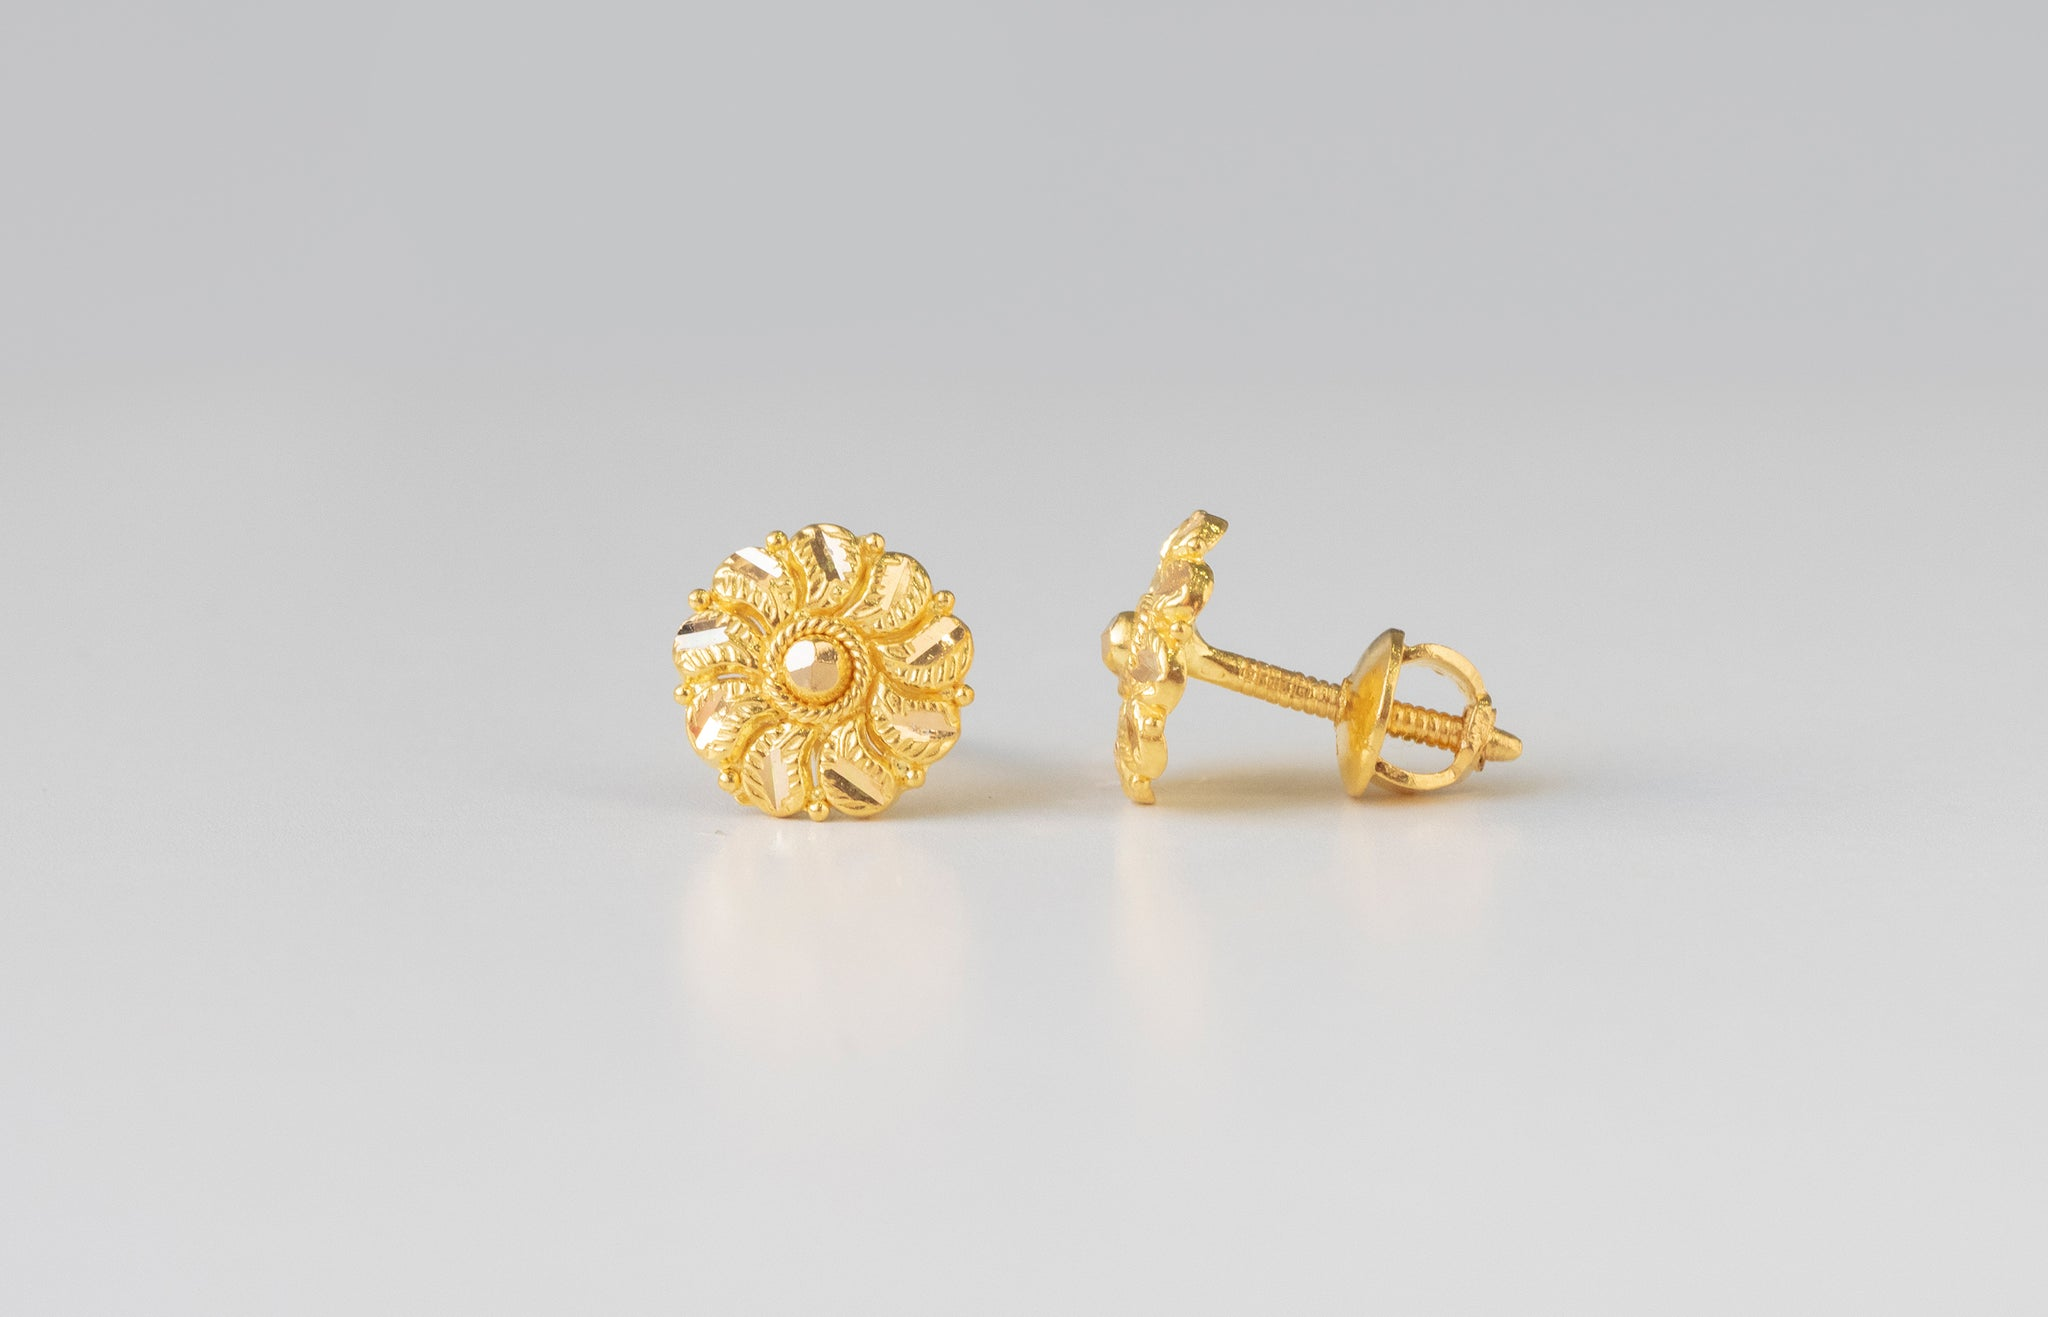 22ct Gold Diamond Cut Ear Studs (1.7g) E-7768